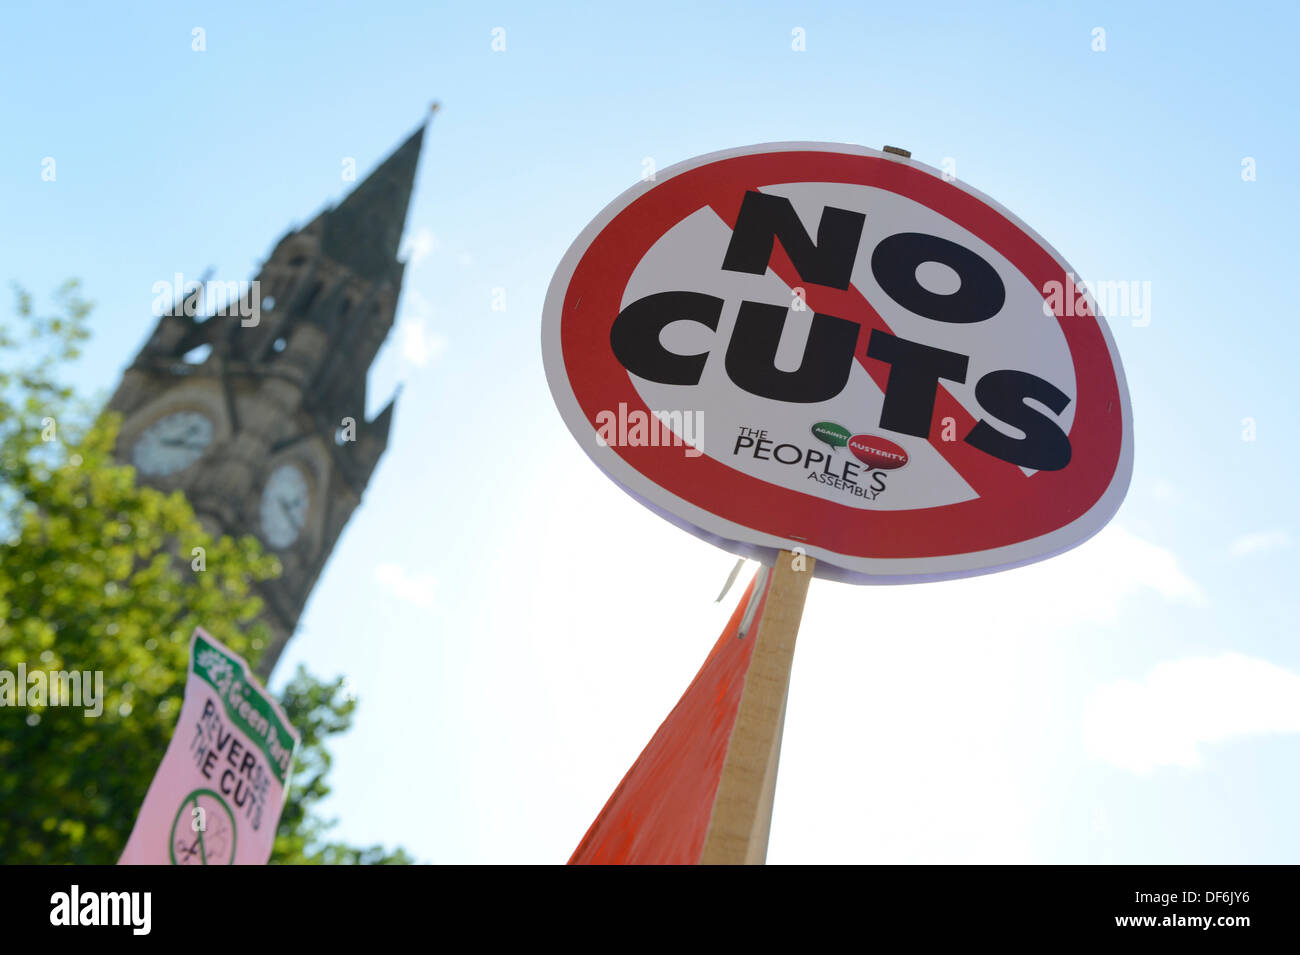 Manchester, UK. 29th Sept 2013. A sign reading 'No Cuts' in Albert Square during a North West TUC organised march and rally intending to defend National Health Service (NHS) jobs and services from cuts and privatisation. The march coincides with the Conservative Party Conference 2013 being held in the city. Credit:  Russell Hart/Alamy Live News. - Stock Image